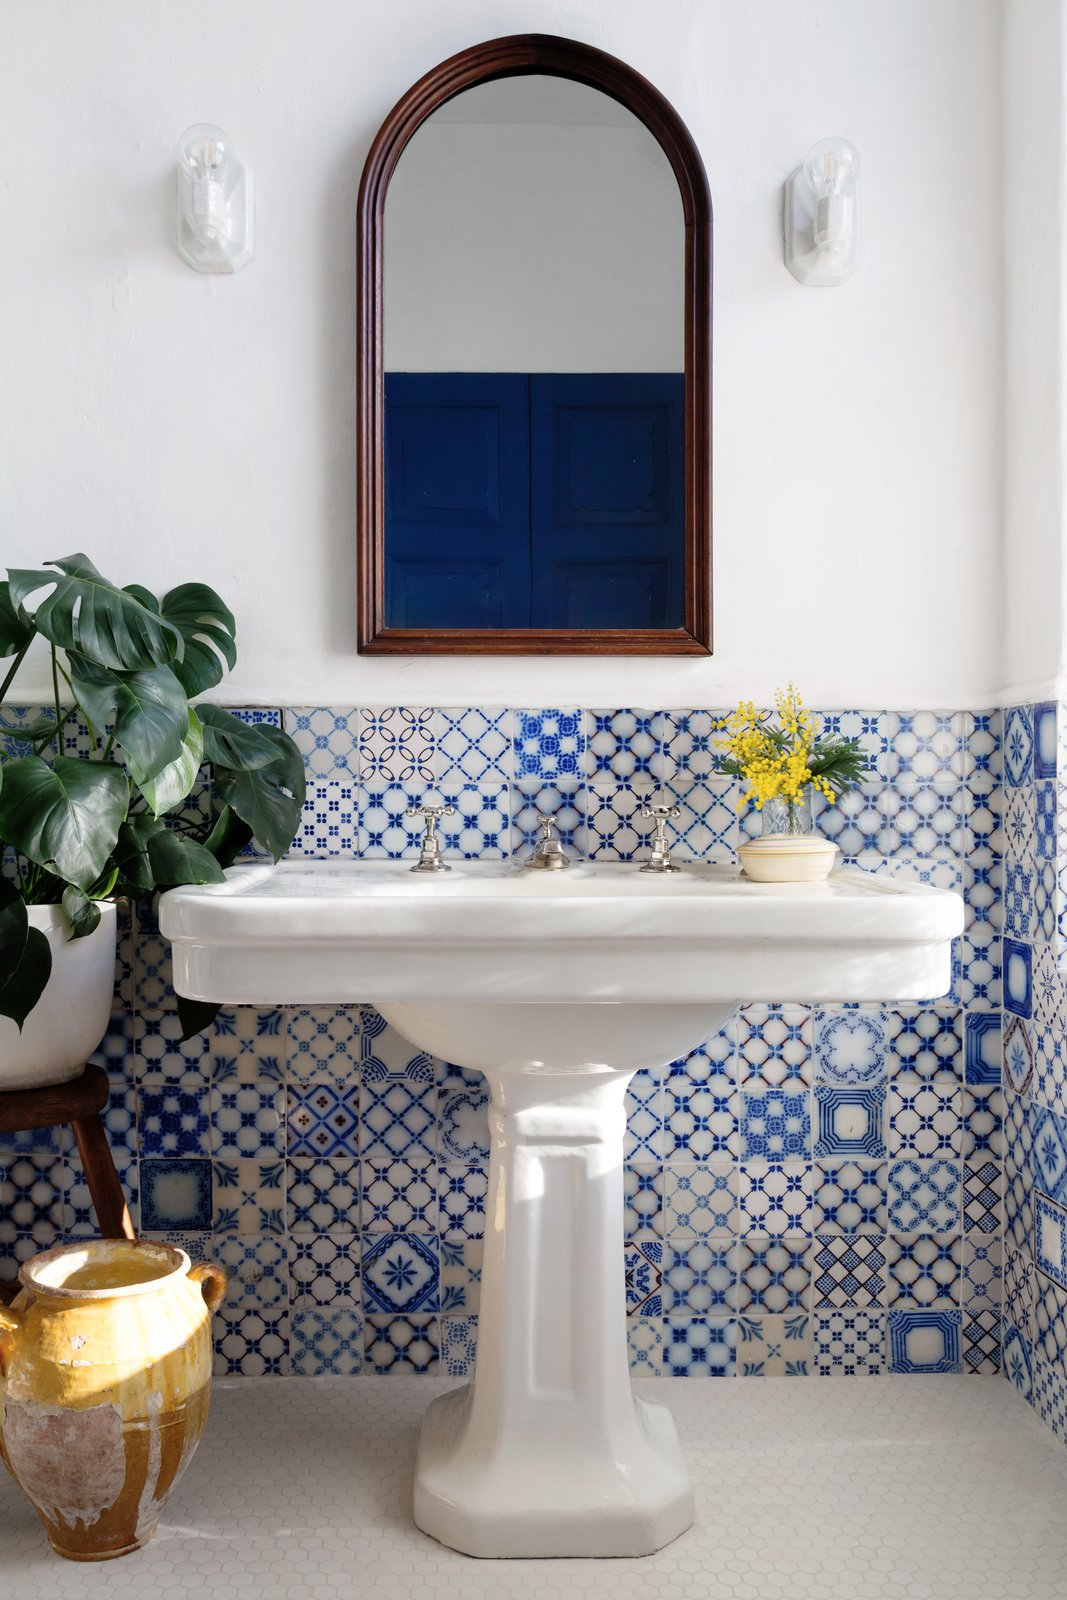 Bath Room, Pedestal Sink, Wall Lighting, and Ceramic Tile Wall  Photo 12 of 22 in A 19th-Century Schoolhouse in Brooklyn Becomes a Classy Apartment